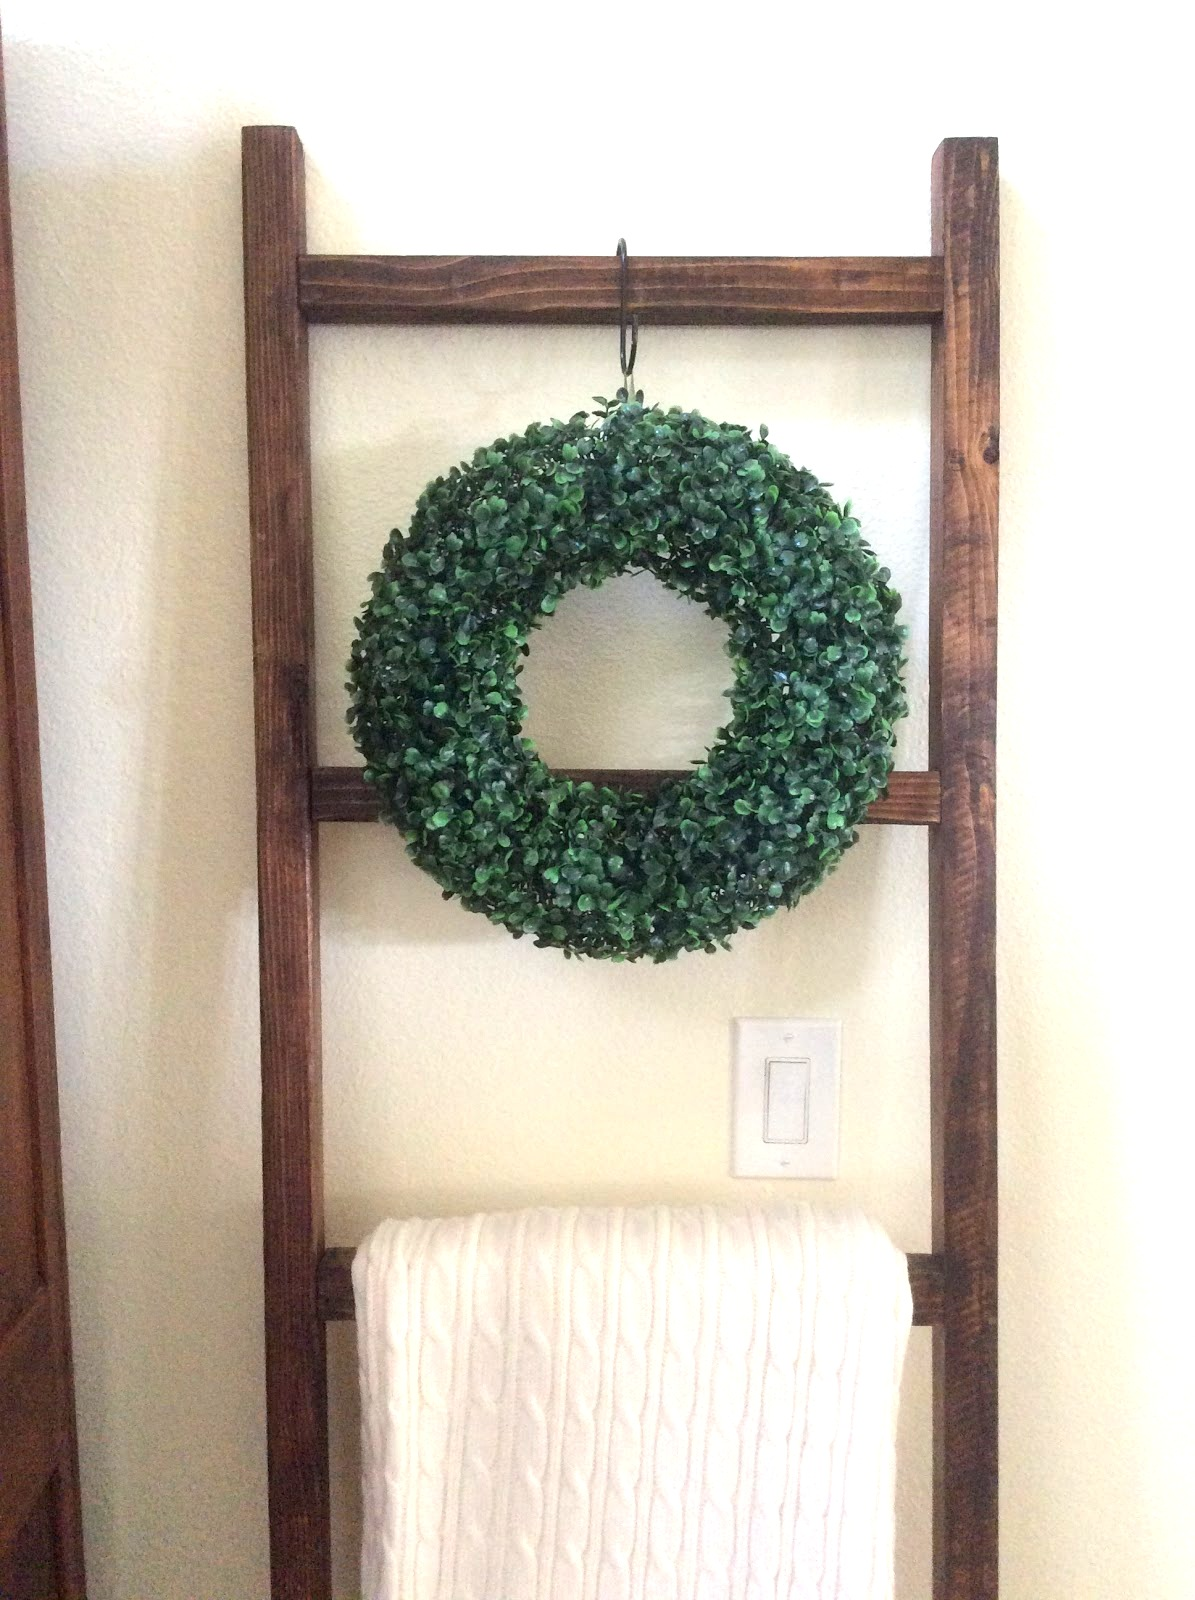 Faux boxwood wreath by Fresh Vintage by Lisa S, featured on DIY Salvaged Junk Projects 518 on Funky Junk!